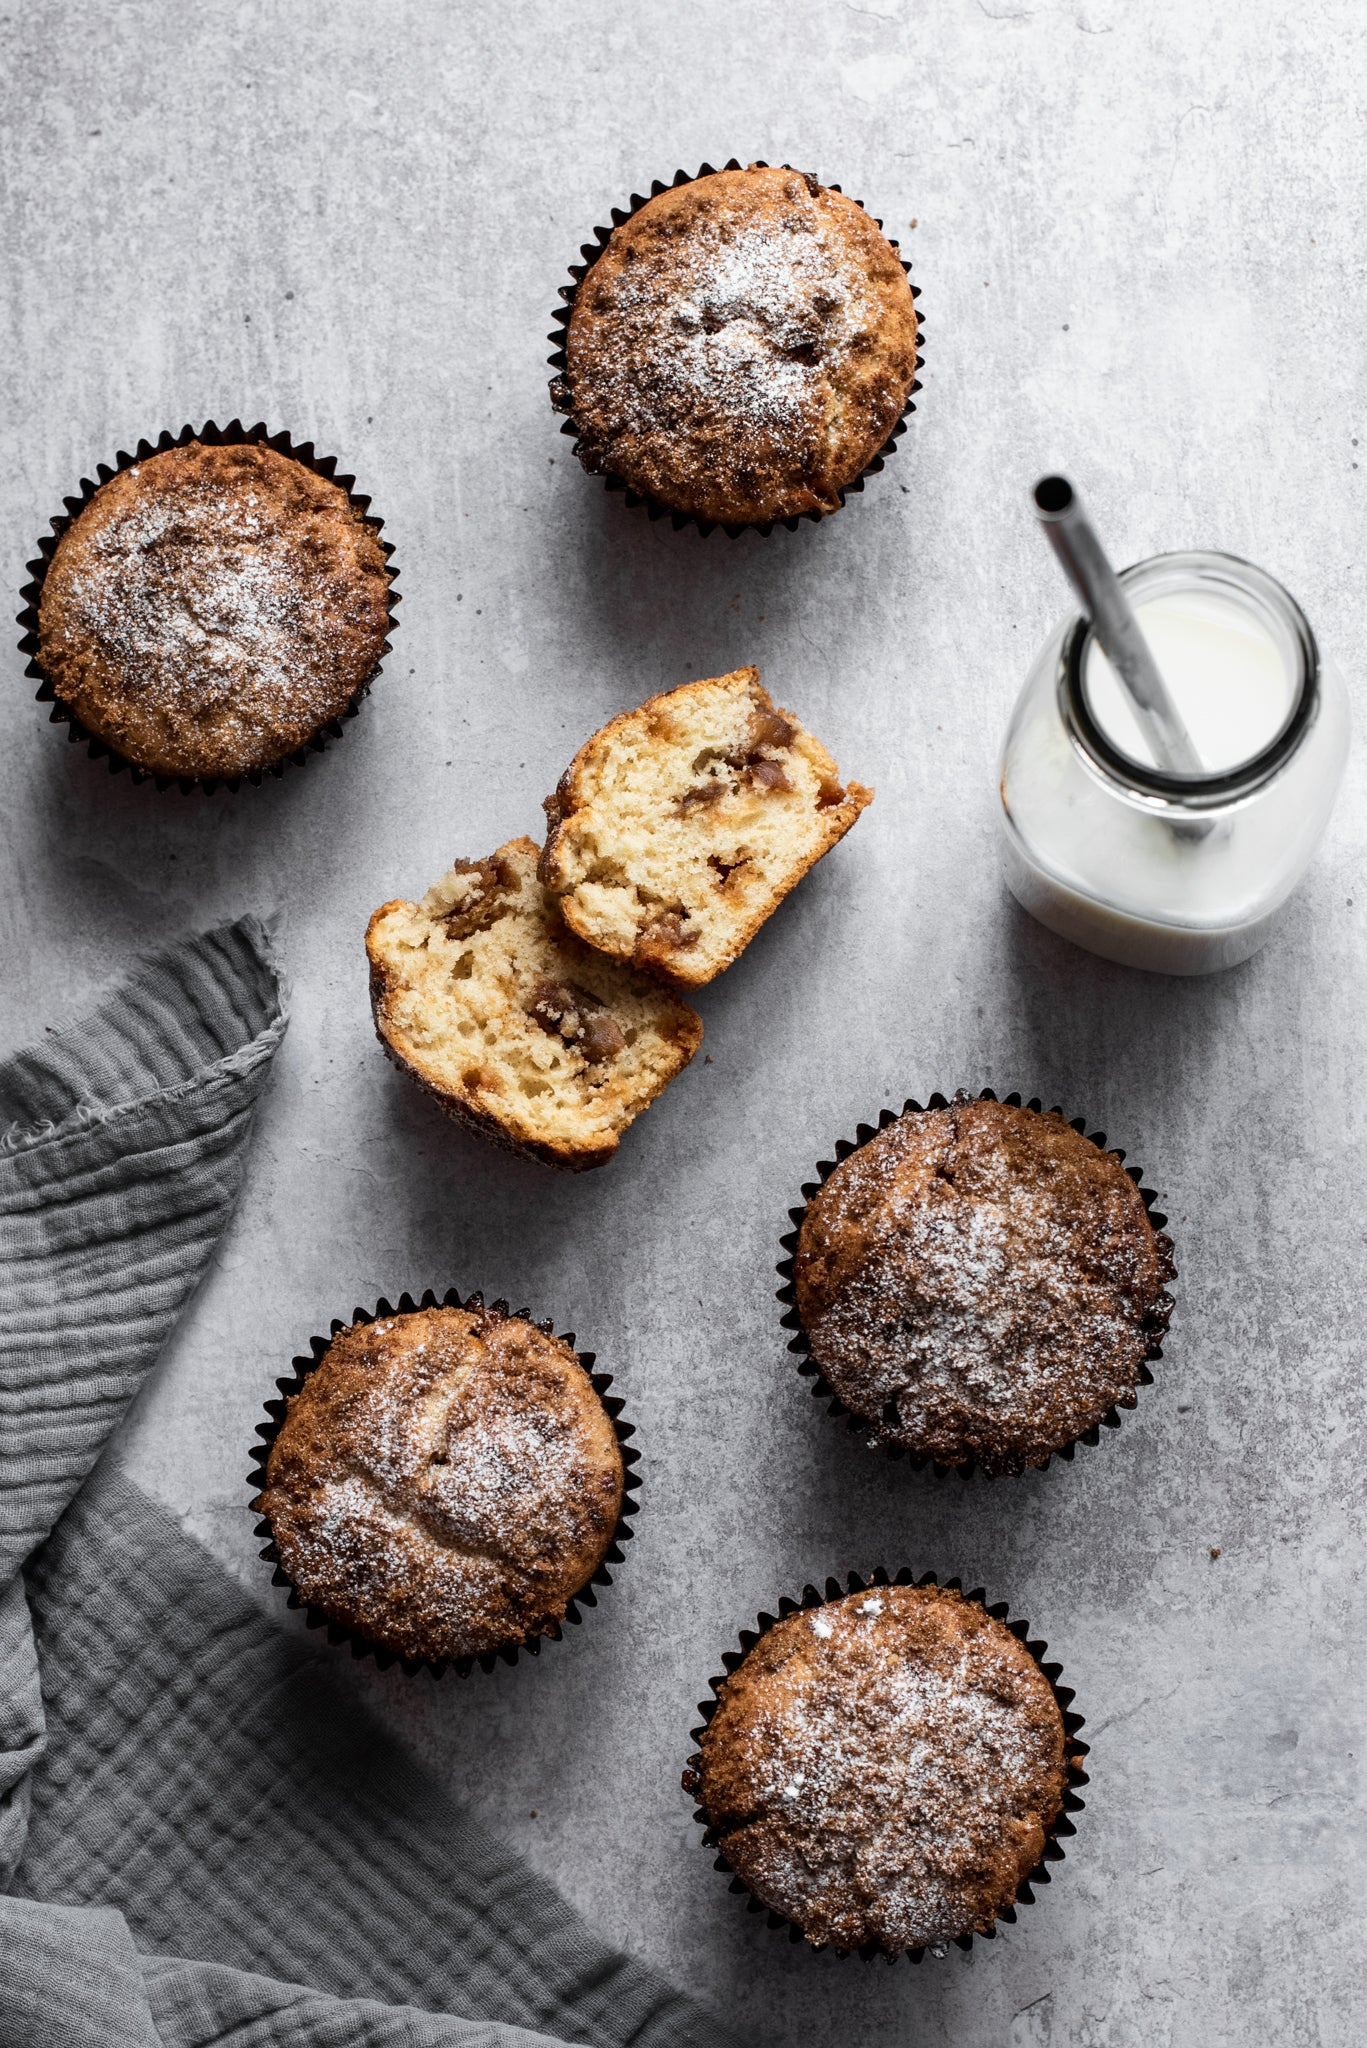 Toffee-And-Apple-Sauce-Muffins-WEB-RES-6.jpg